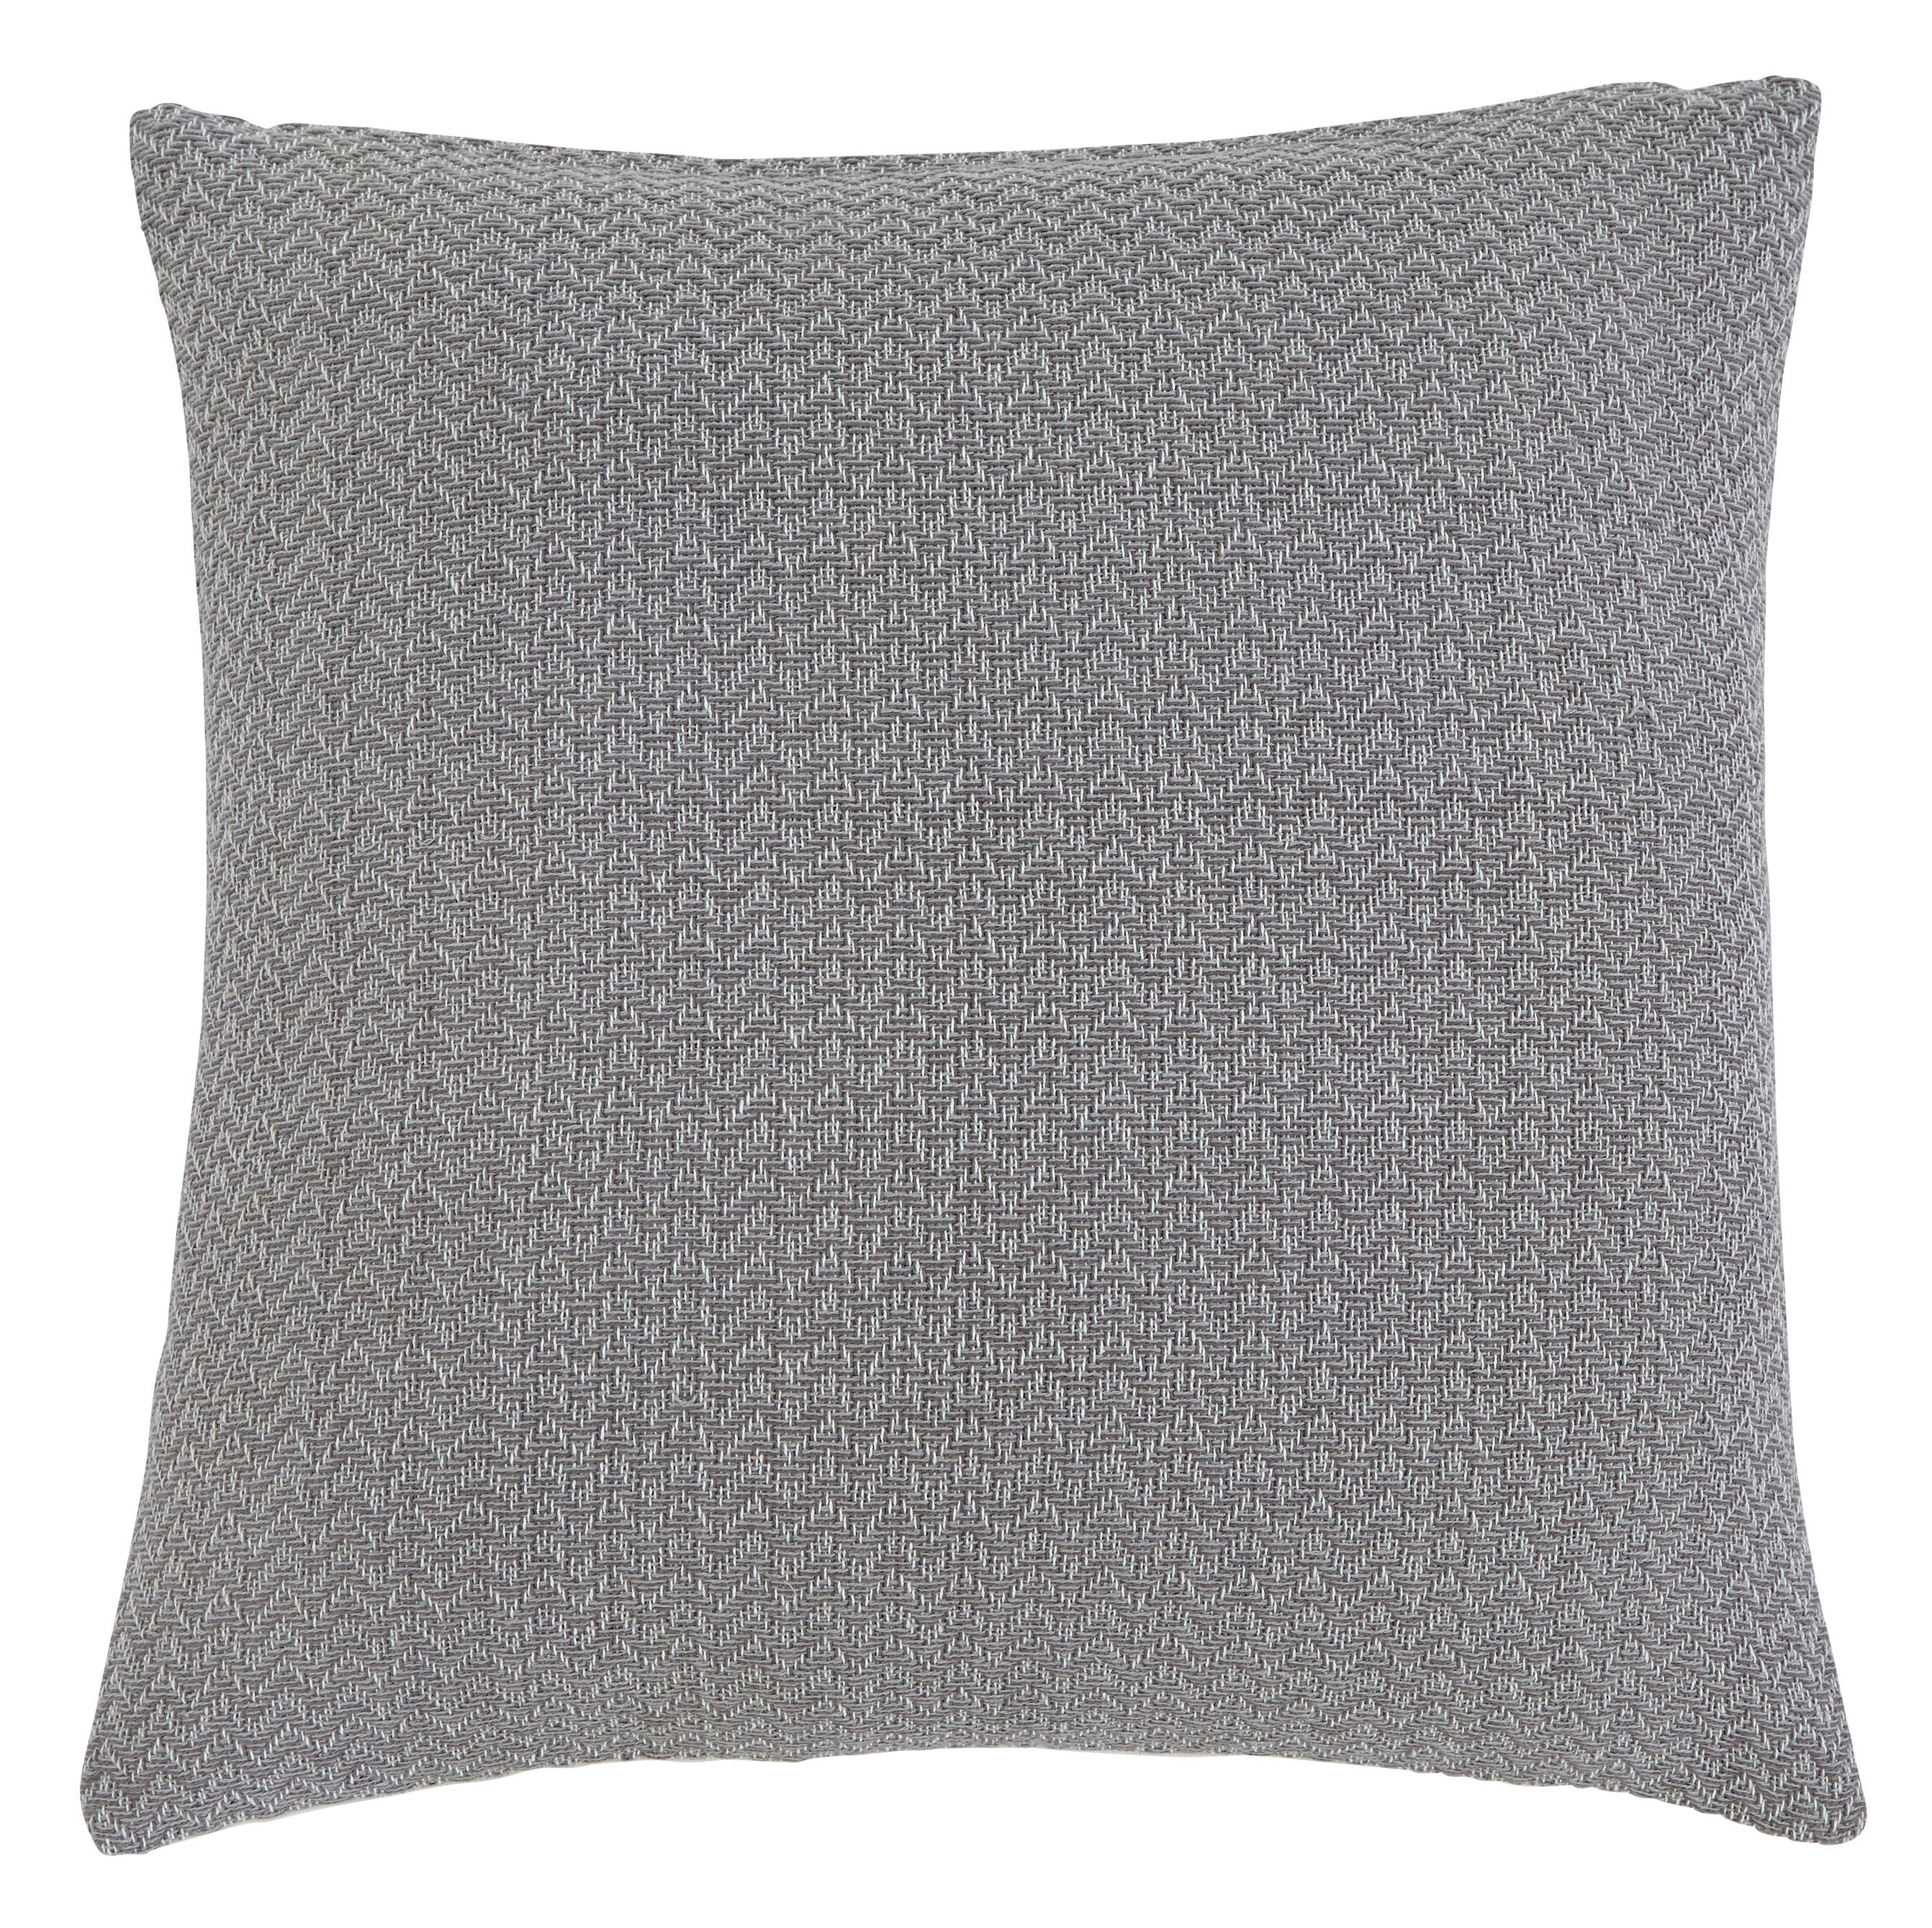 Signature Design by Ashley Pillows Solid - Gray Pillow - Item Number: A1000381P